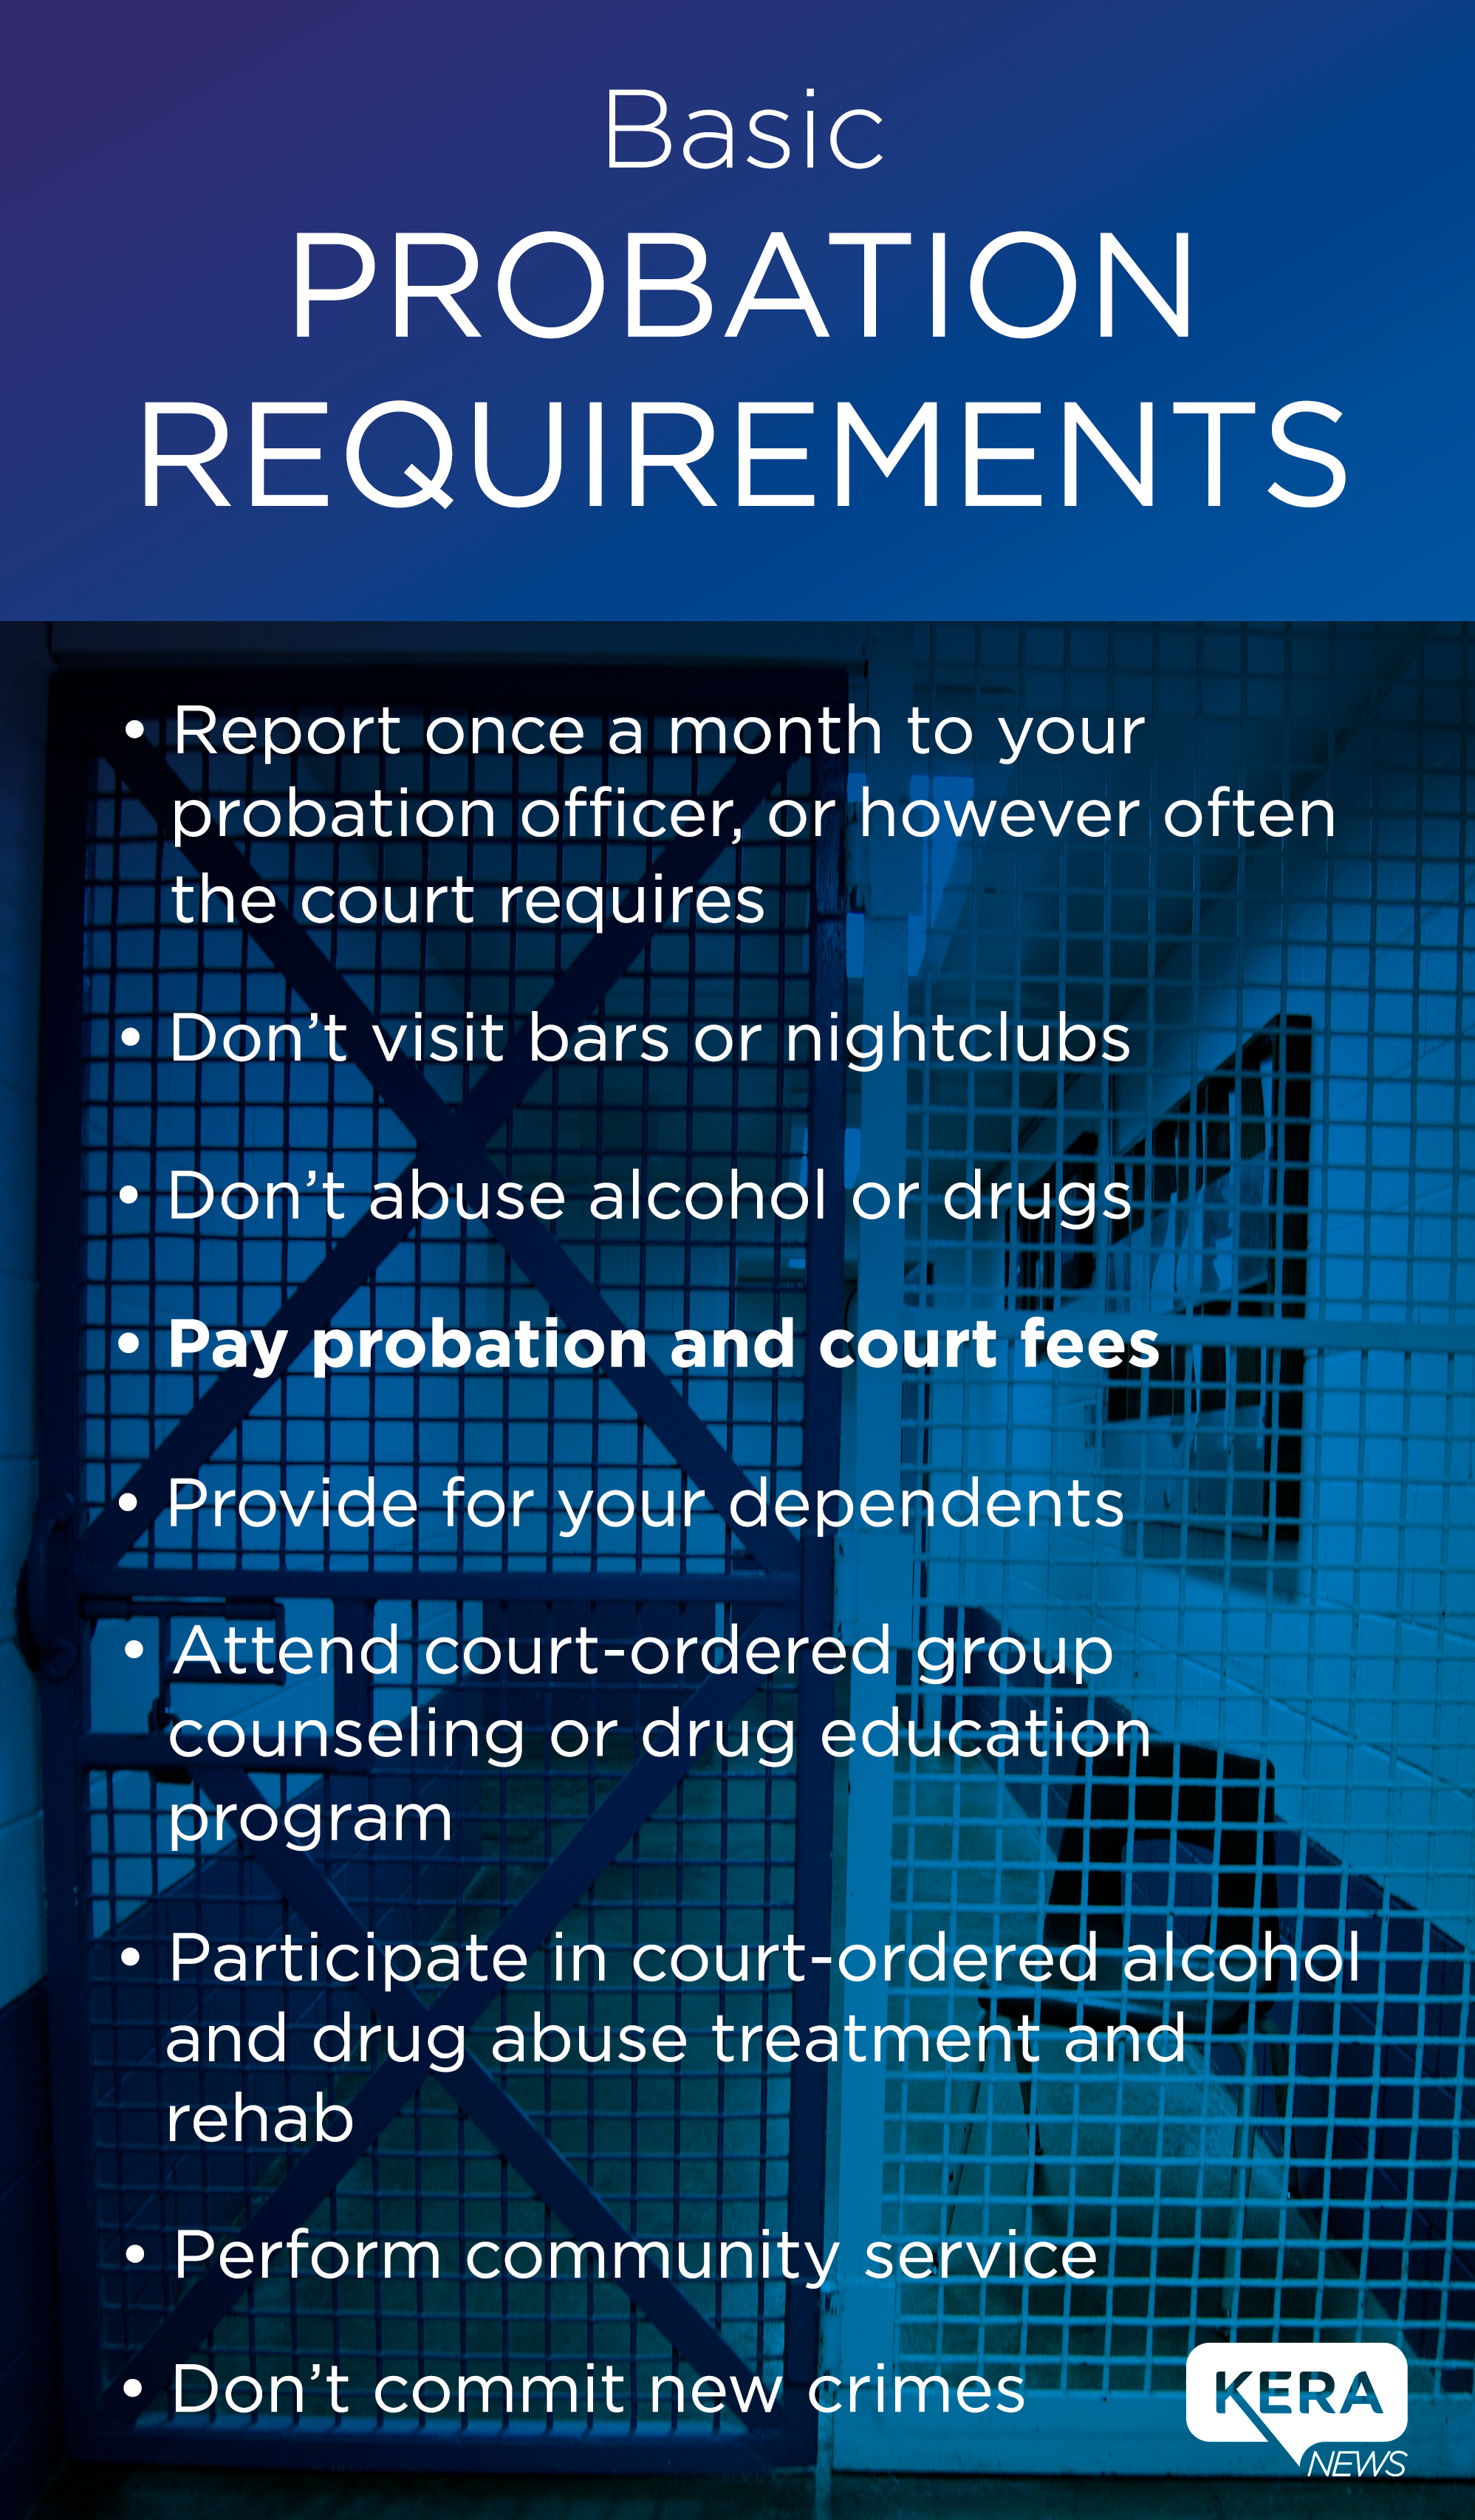 Probationers can expect to have to comply with this basic list of requirements. For the monthly payment, a judge decides how much an individual probationer's fees will be. (Source: Dallas County Community Supervision and Corrections)